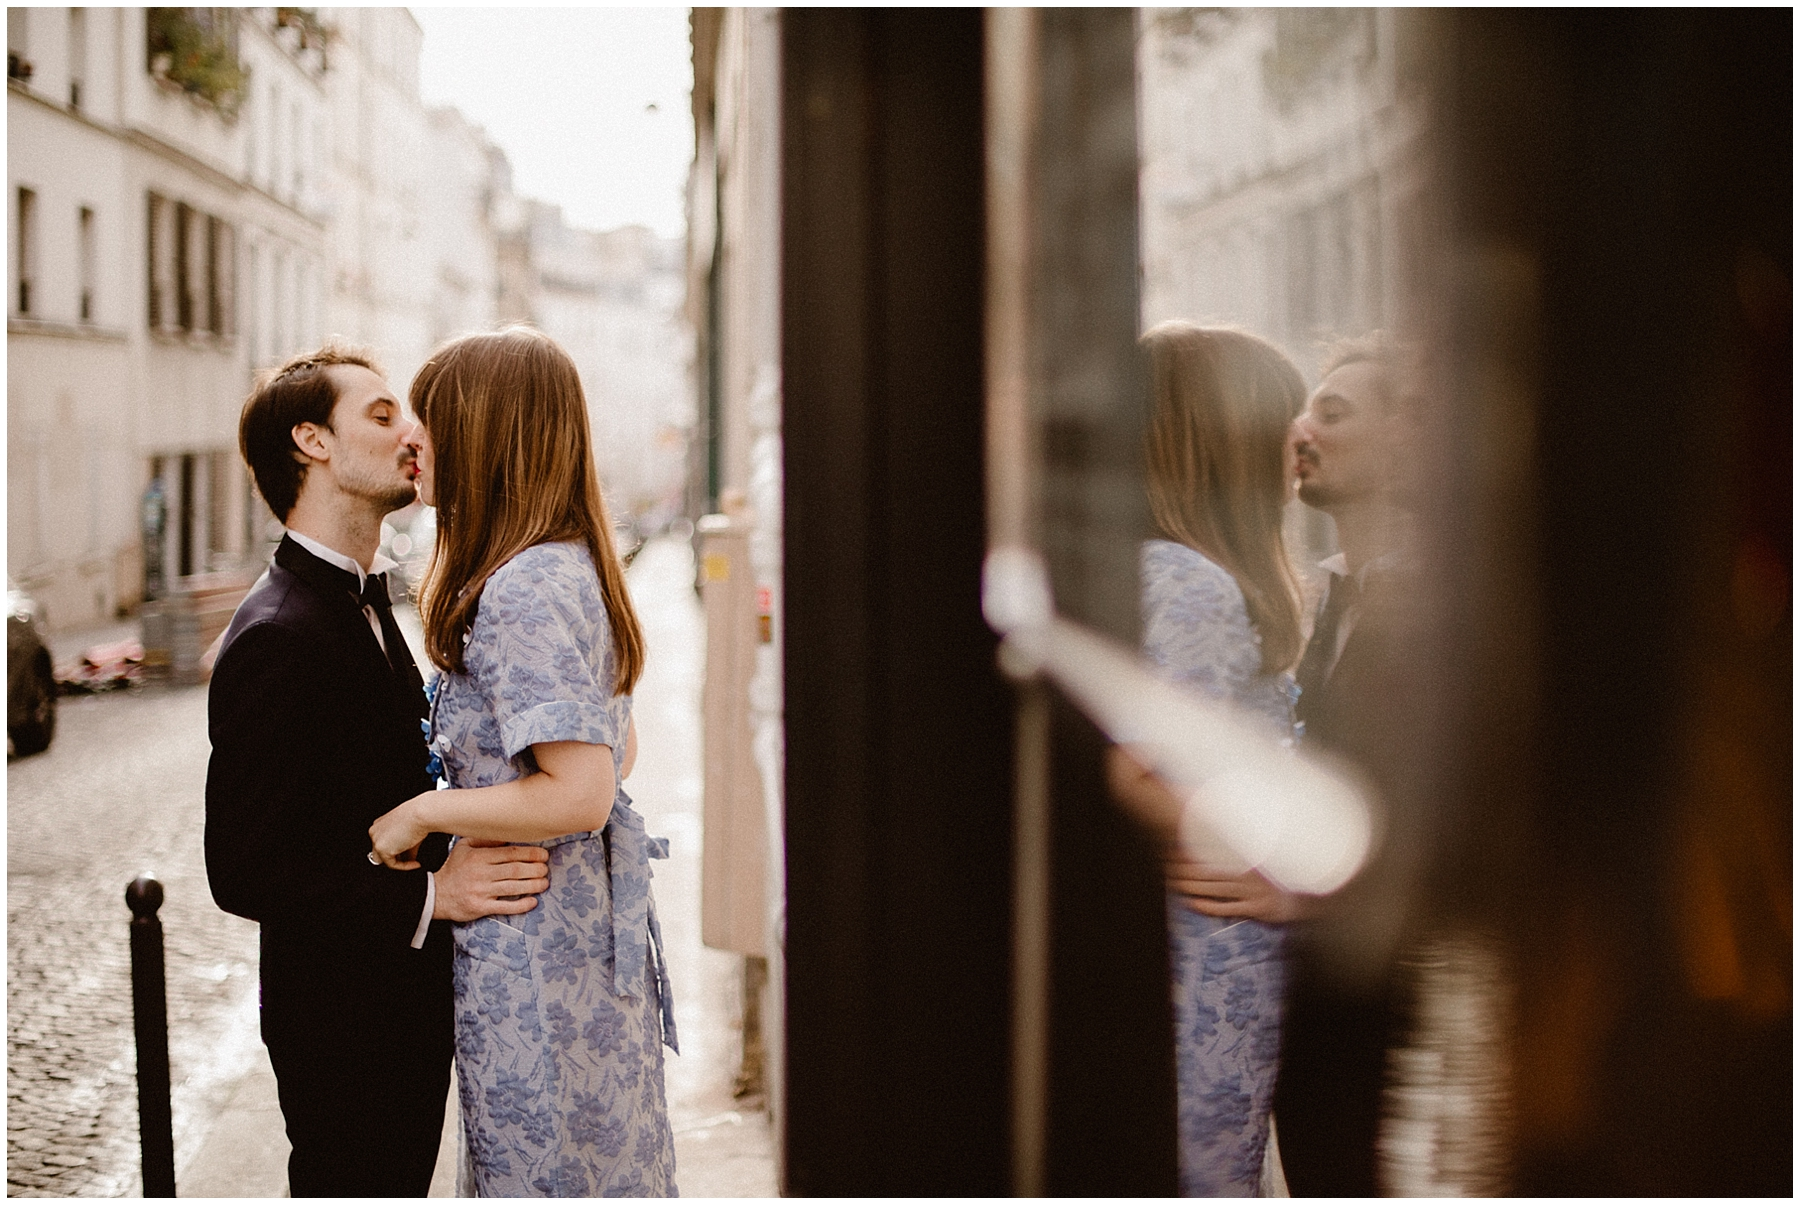 Mariage Montmartre Wedding Paris Abbesses